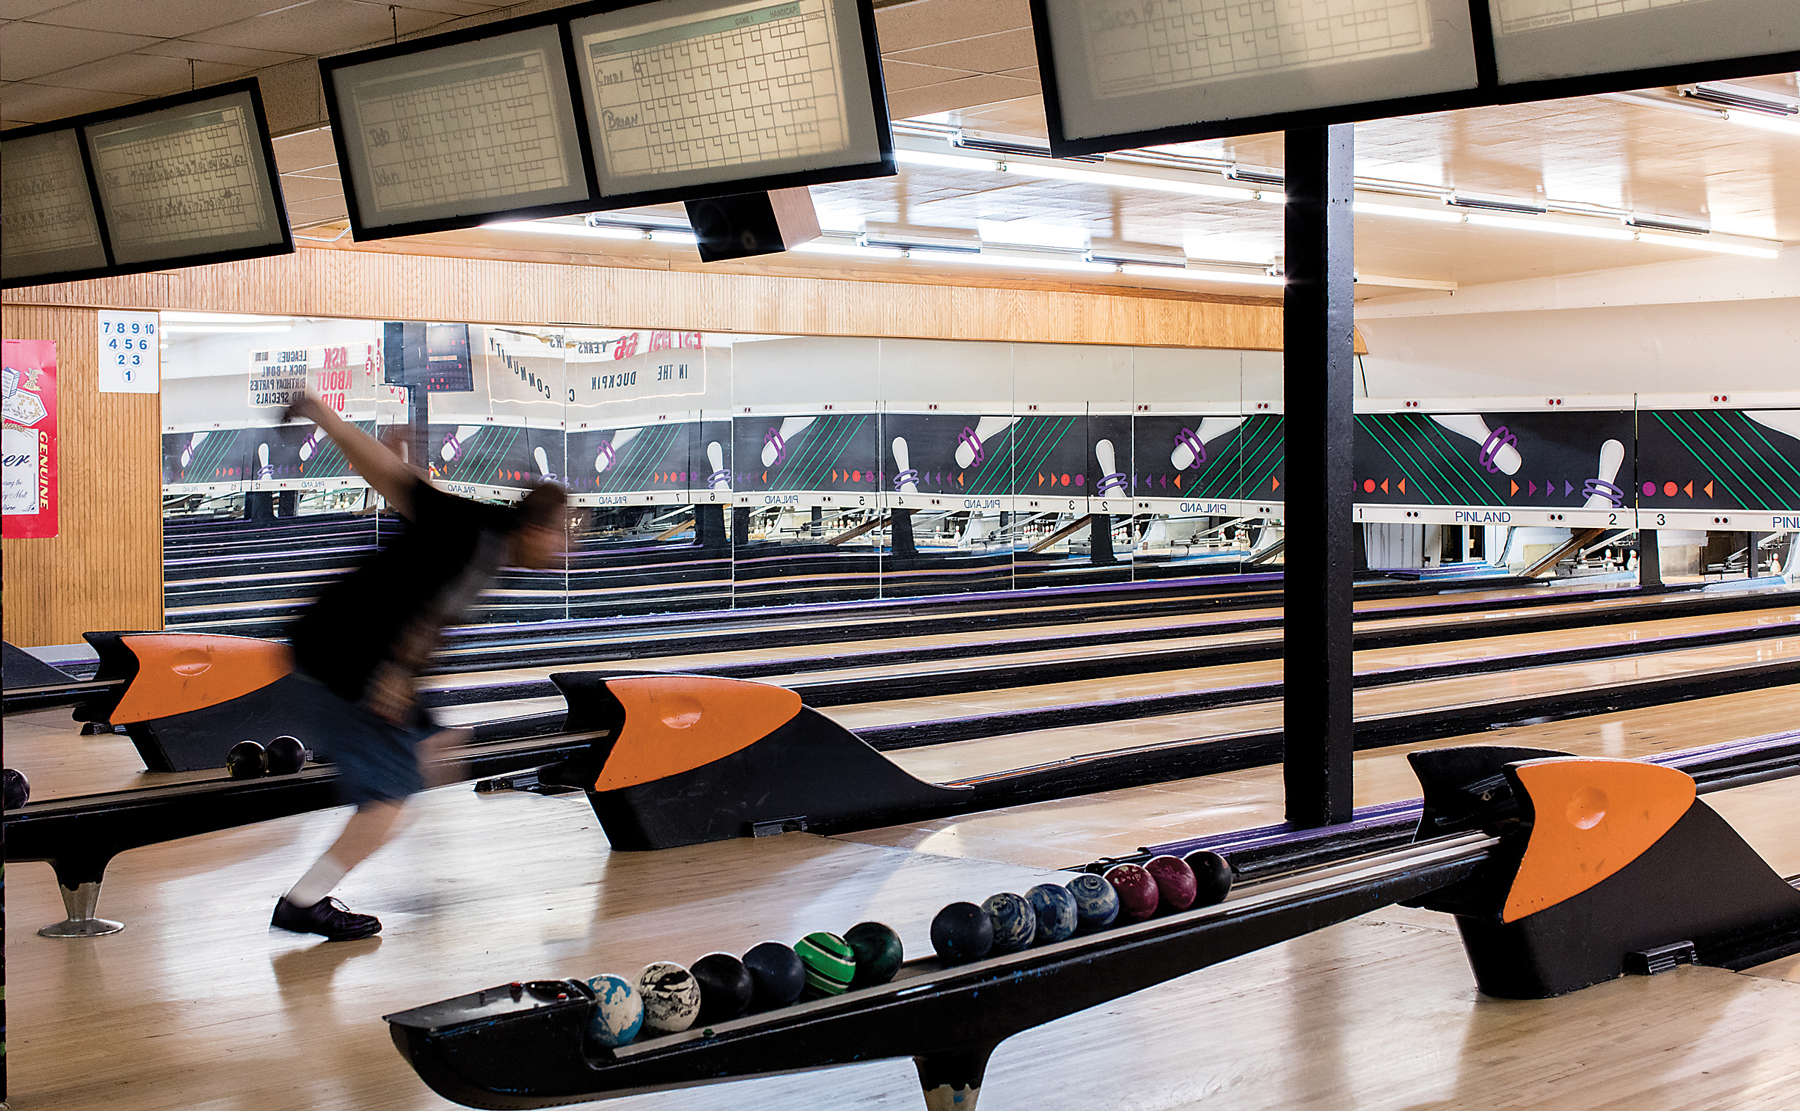 duckpin bowling in baltimore a disappearing pastime duckpin bowling is spared in its hometown of baltimore